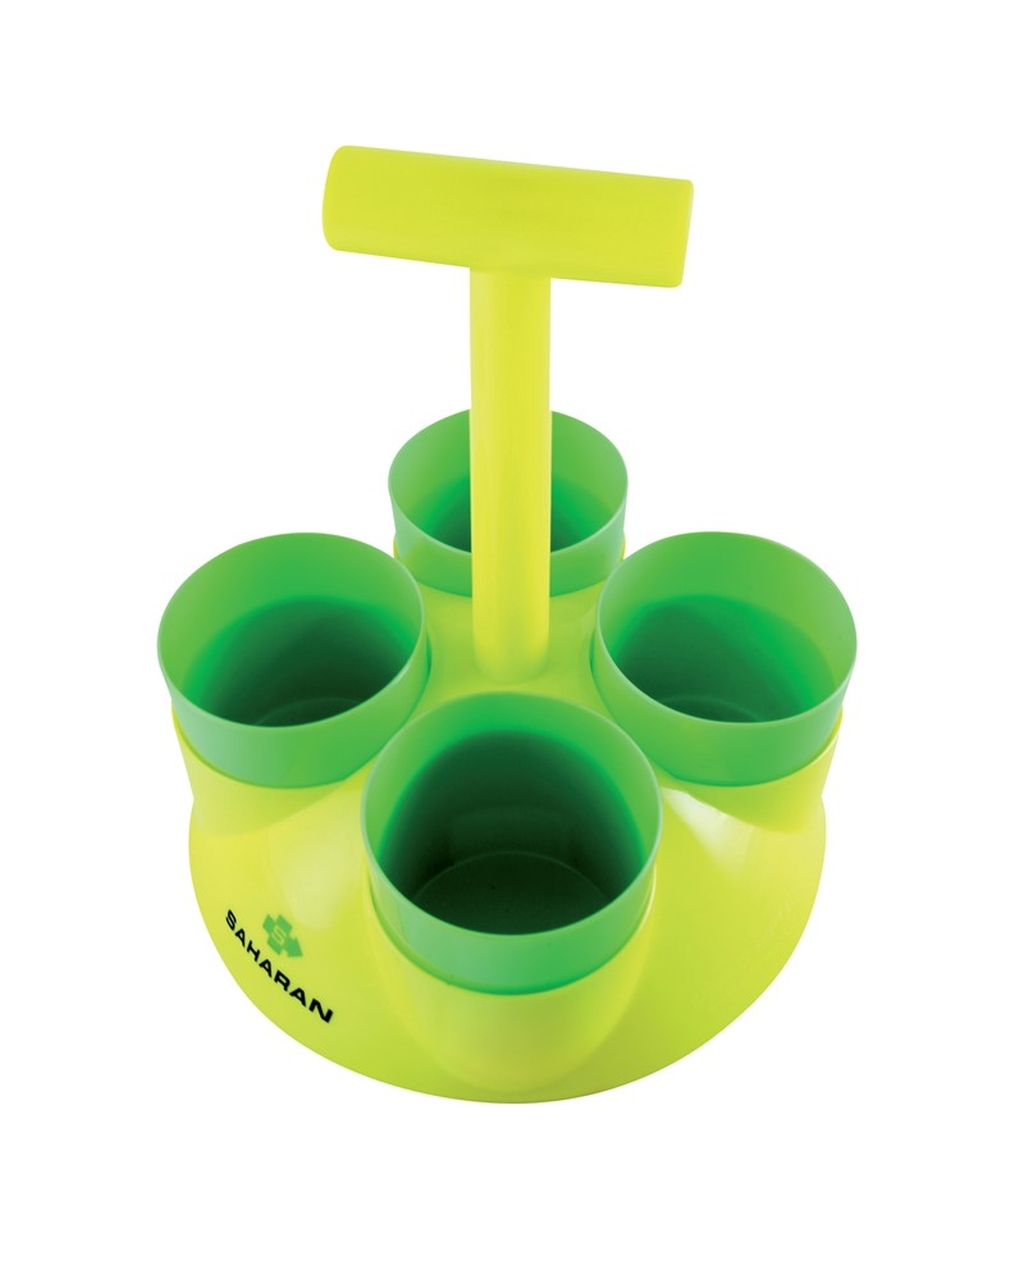 Carrystand